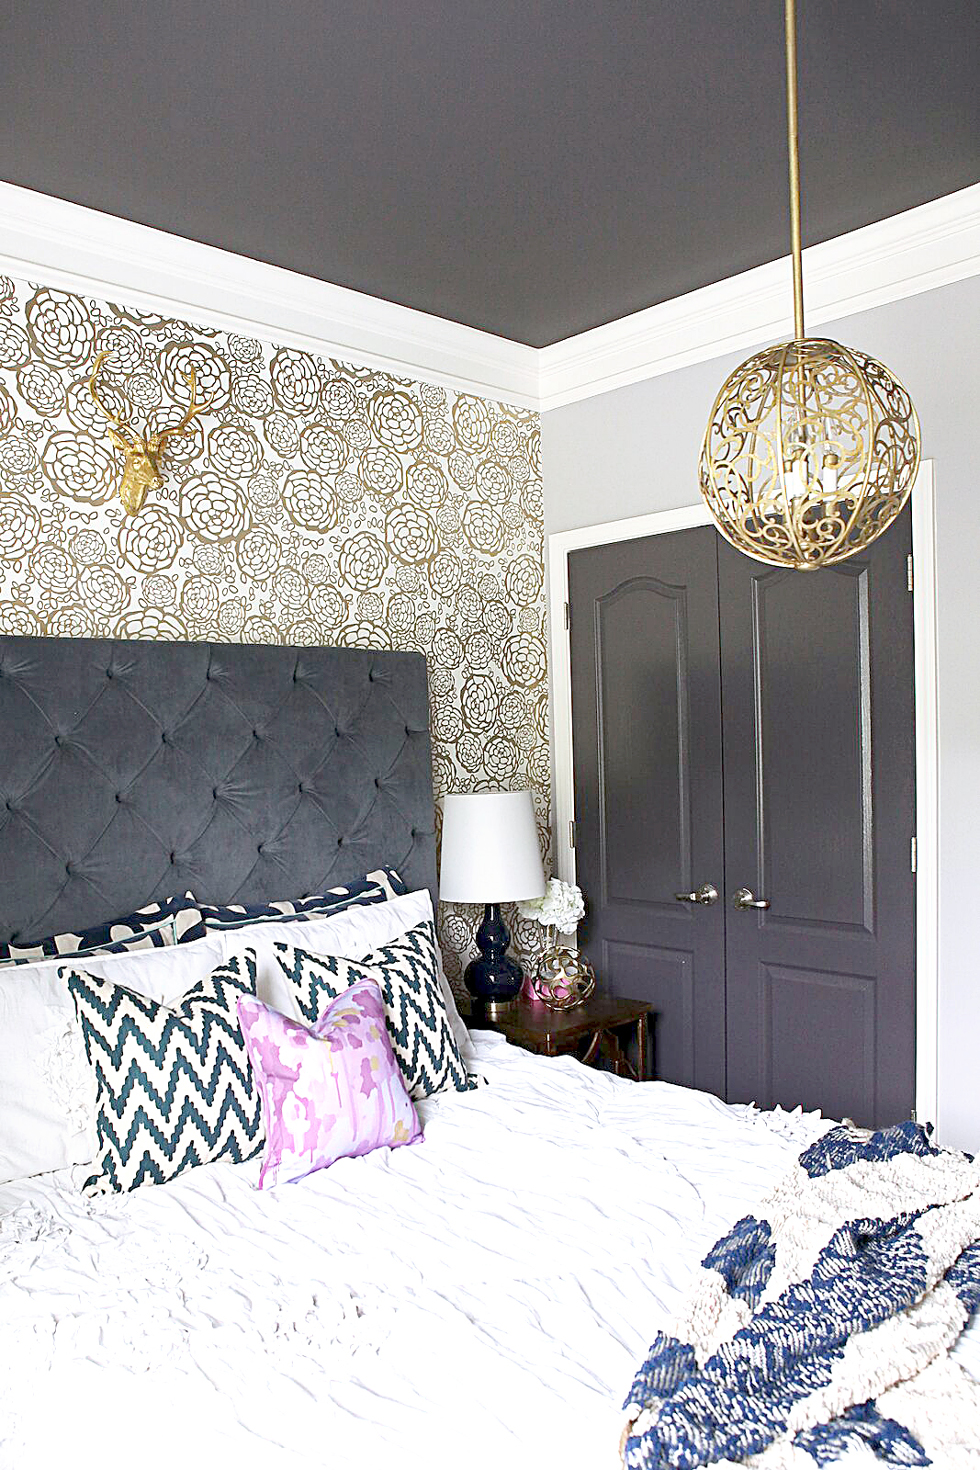 Gold and white wallpapered bedroom walls